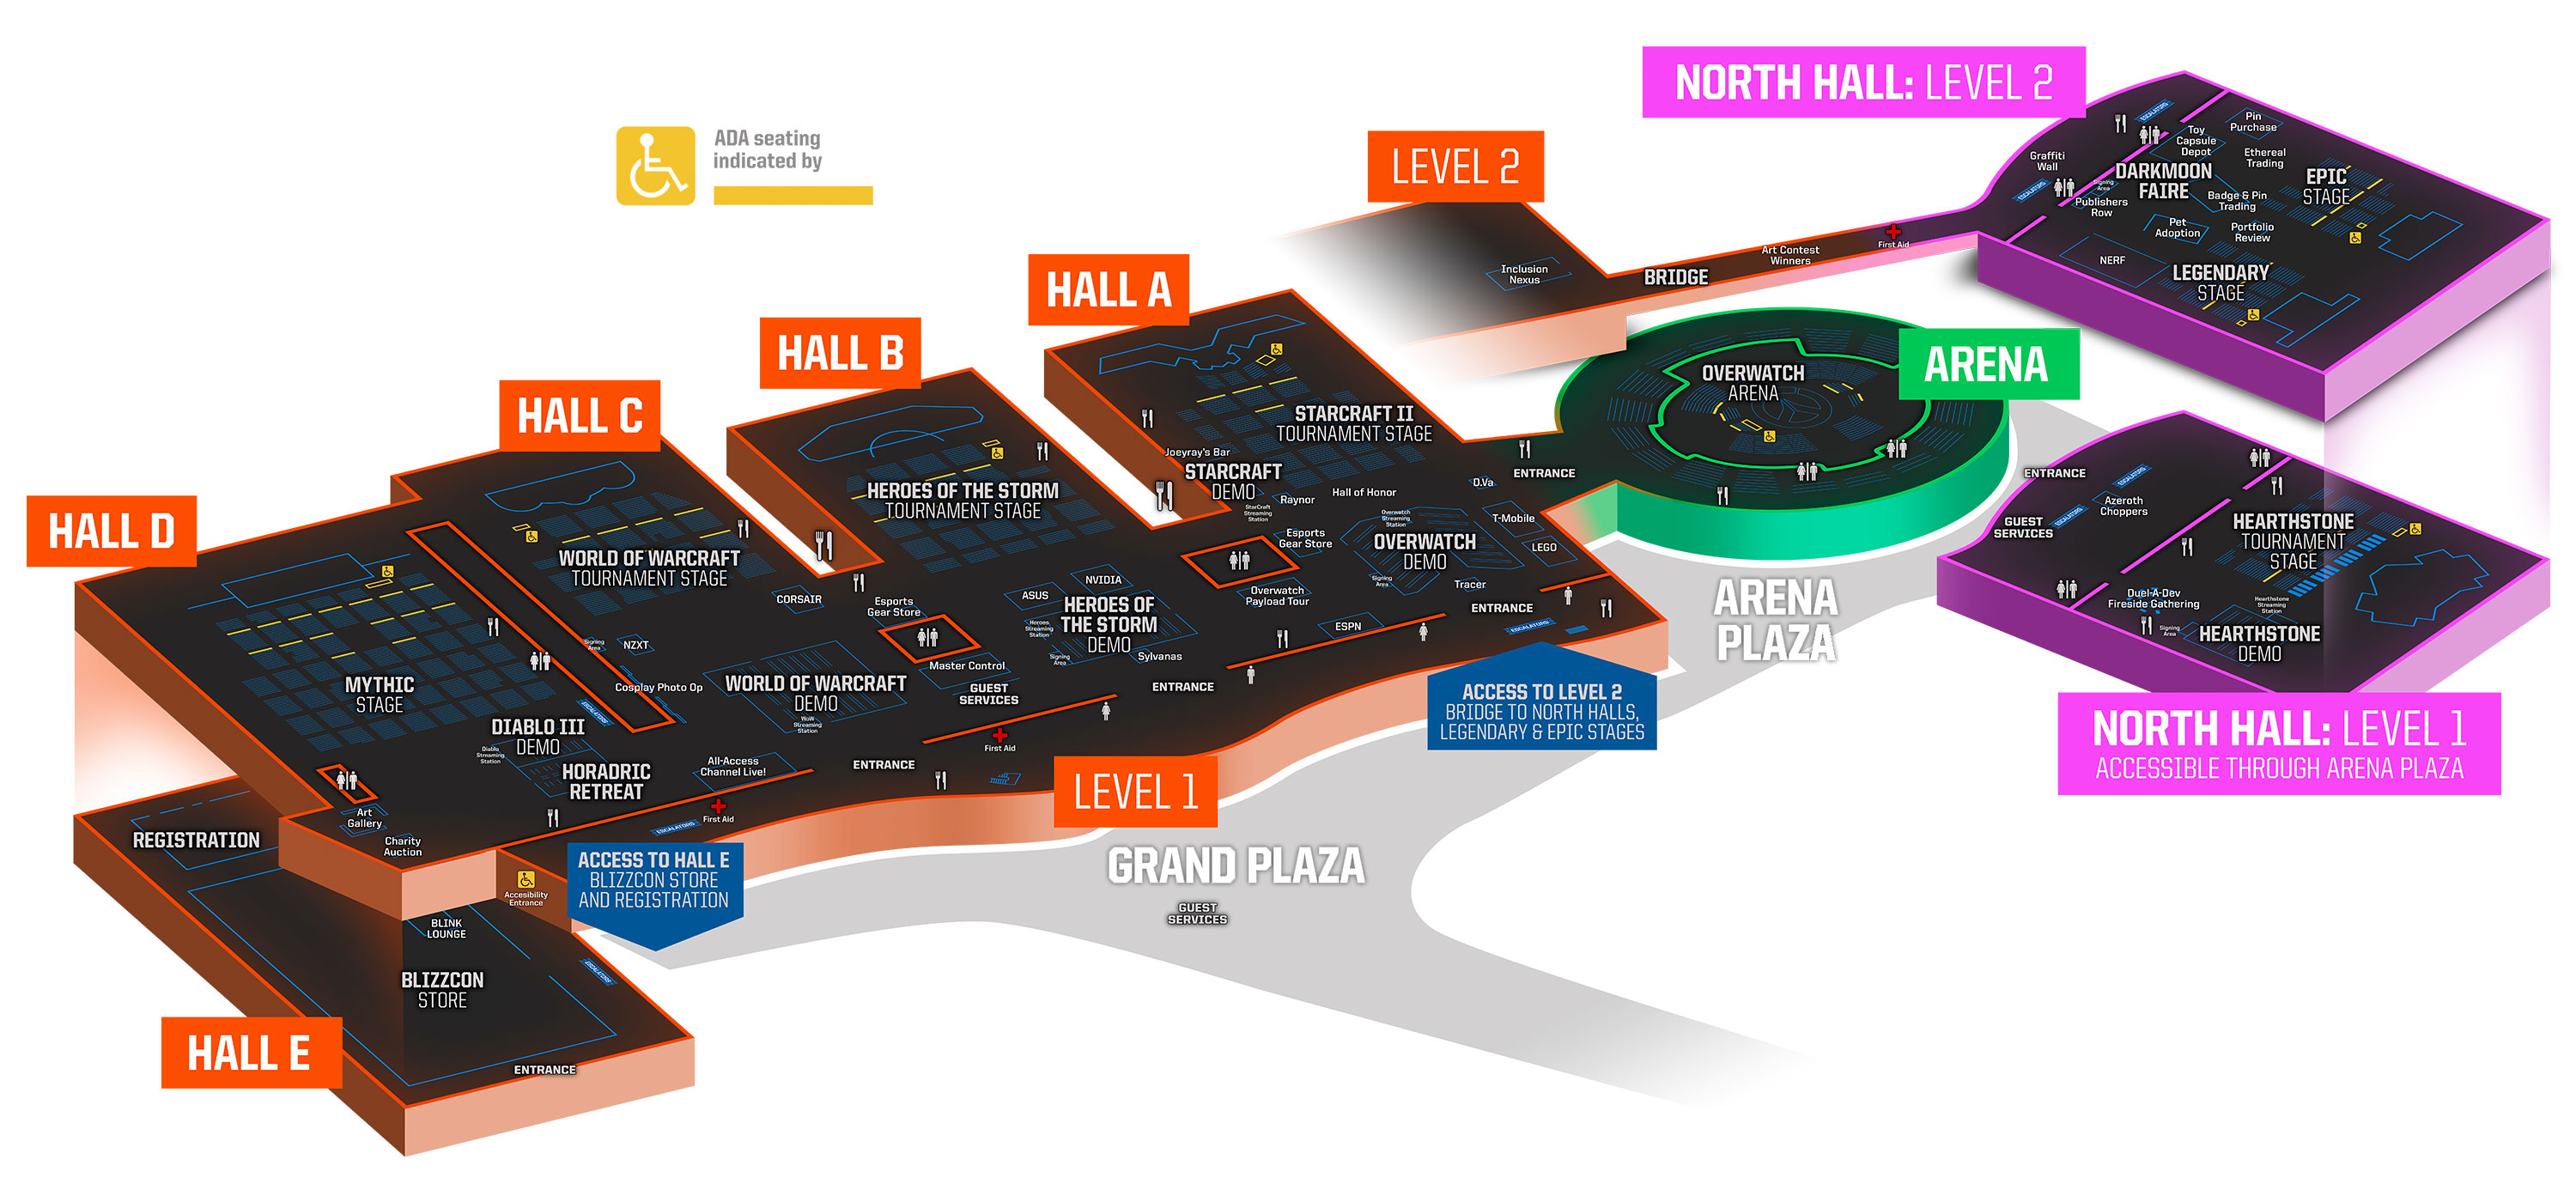 Blizzcon 2018 convention map revealed